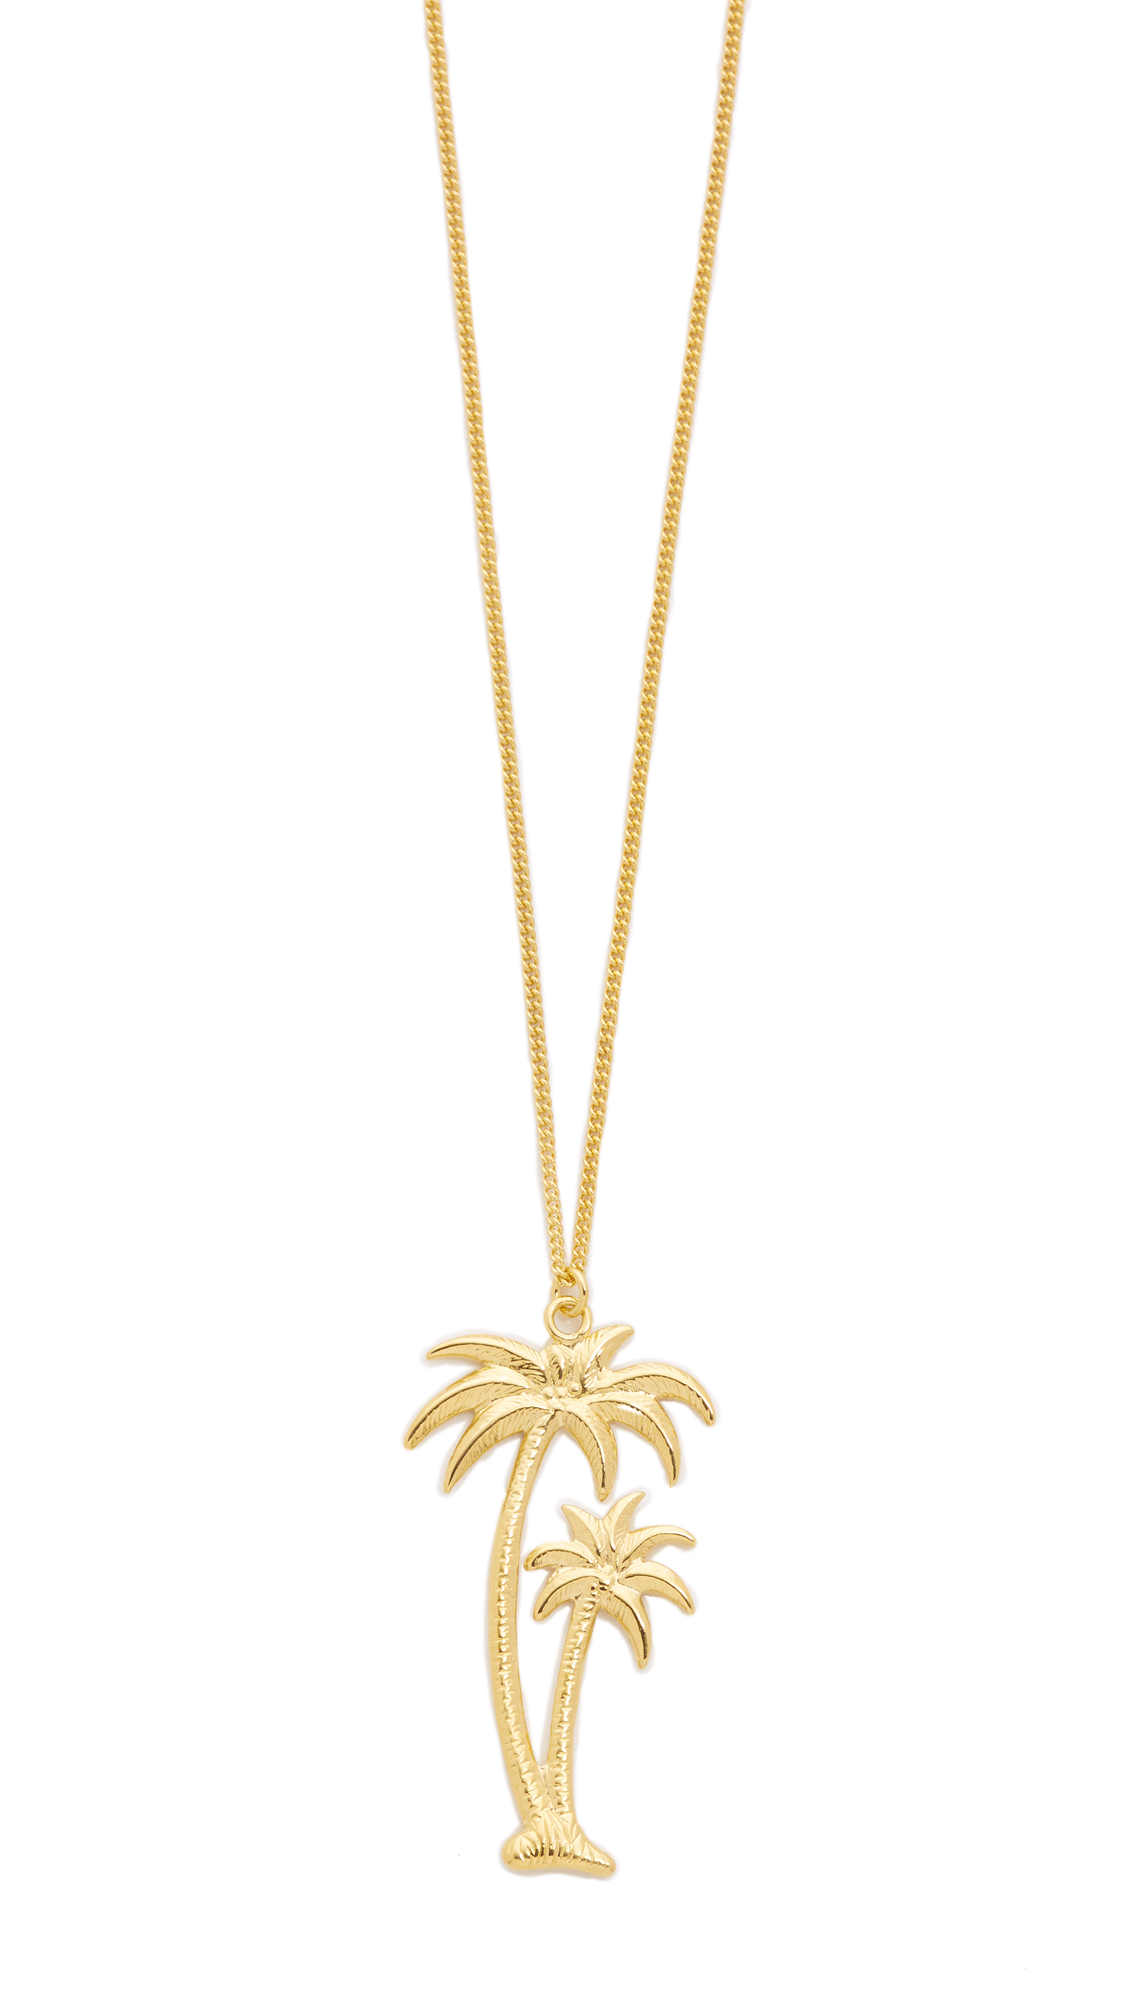 New palm tree diamond necklace jewellrys website wouters hendrix palm tree pendant necklace in metallic aloadofball Image collections